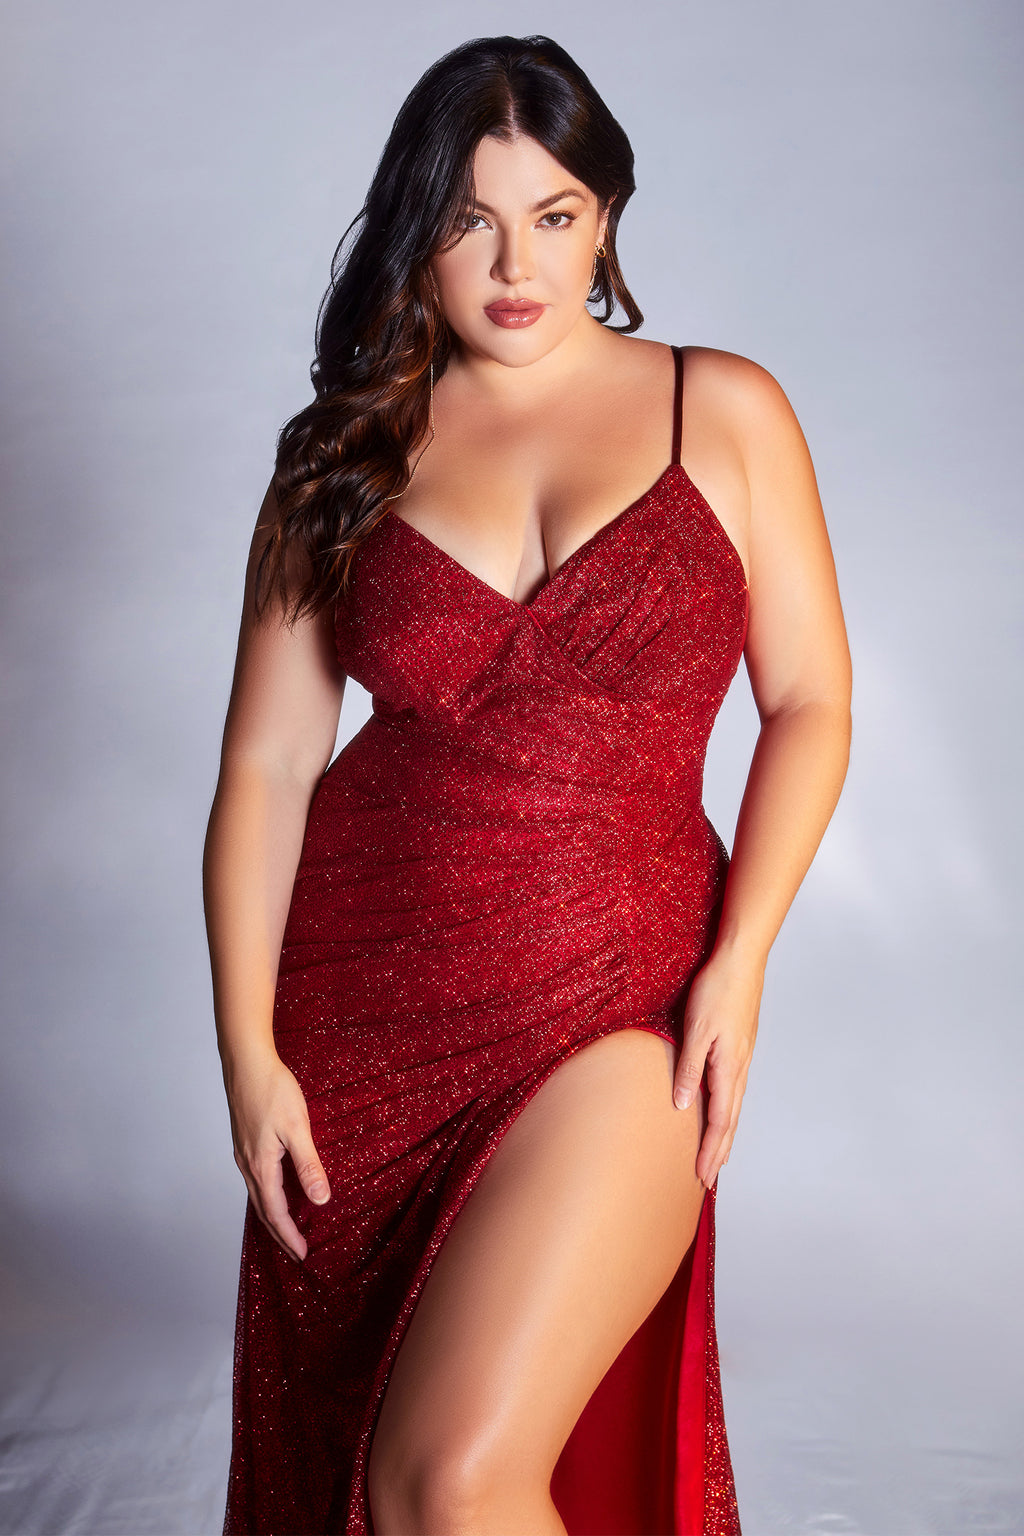 Opulent Plus Size Shimmery Gown with Deep Leg Slit #CDCM8017C